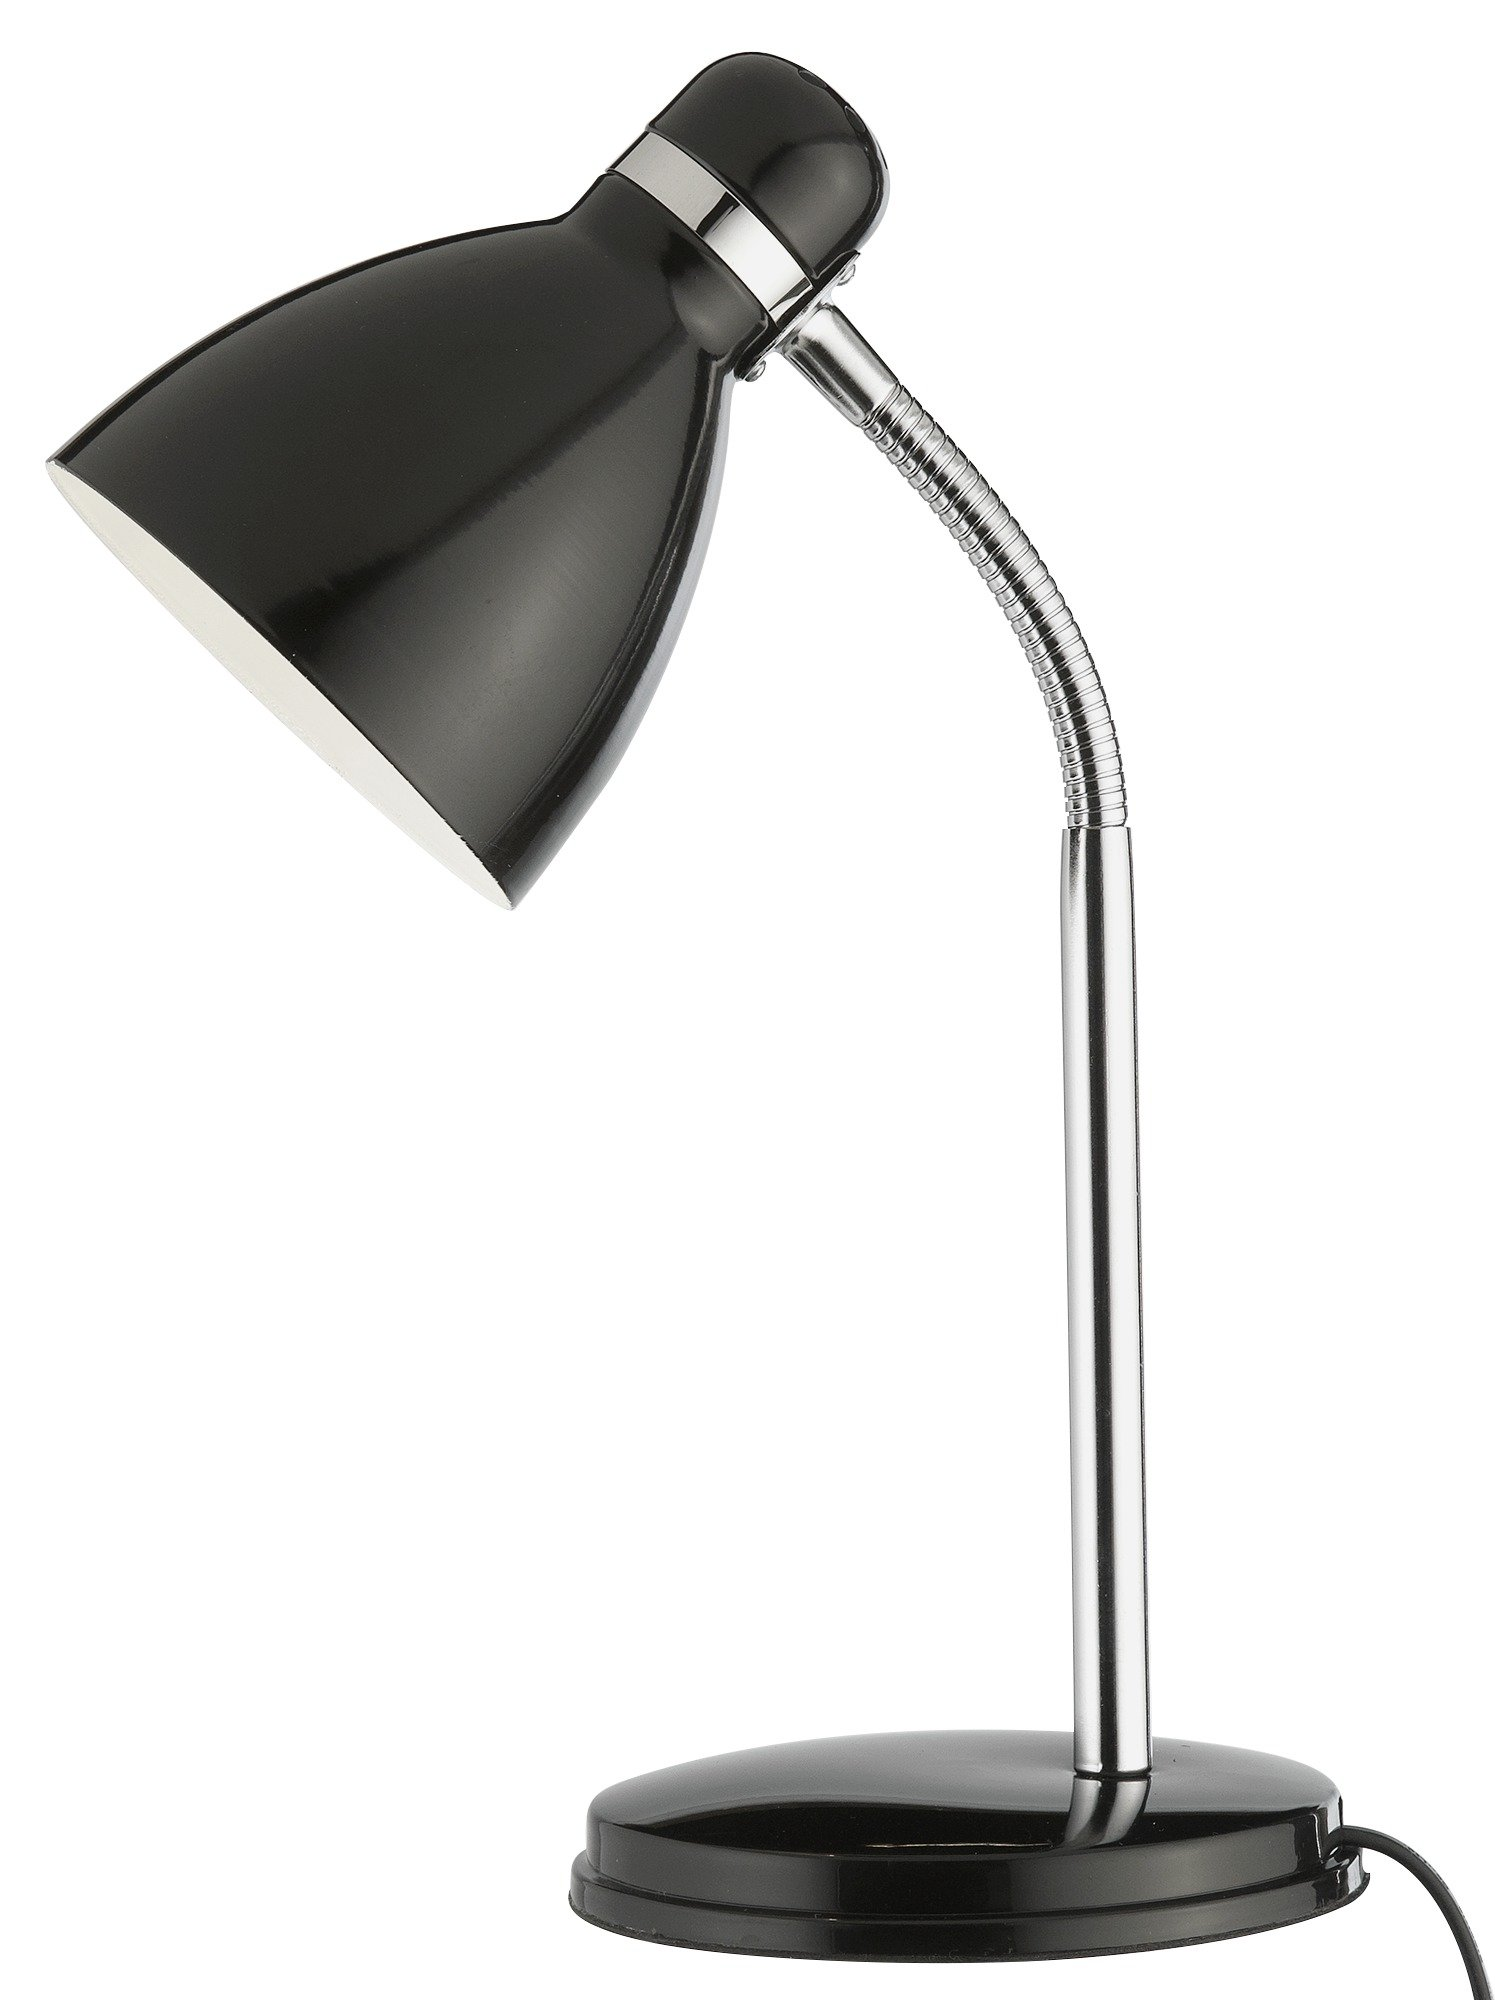 Image of ColourMatch Desk Lamp - Jet Black